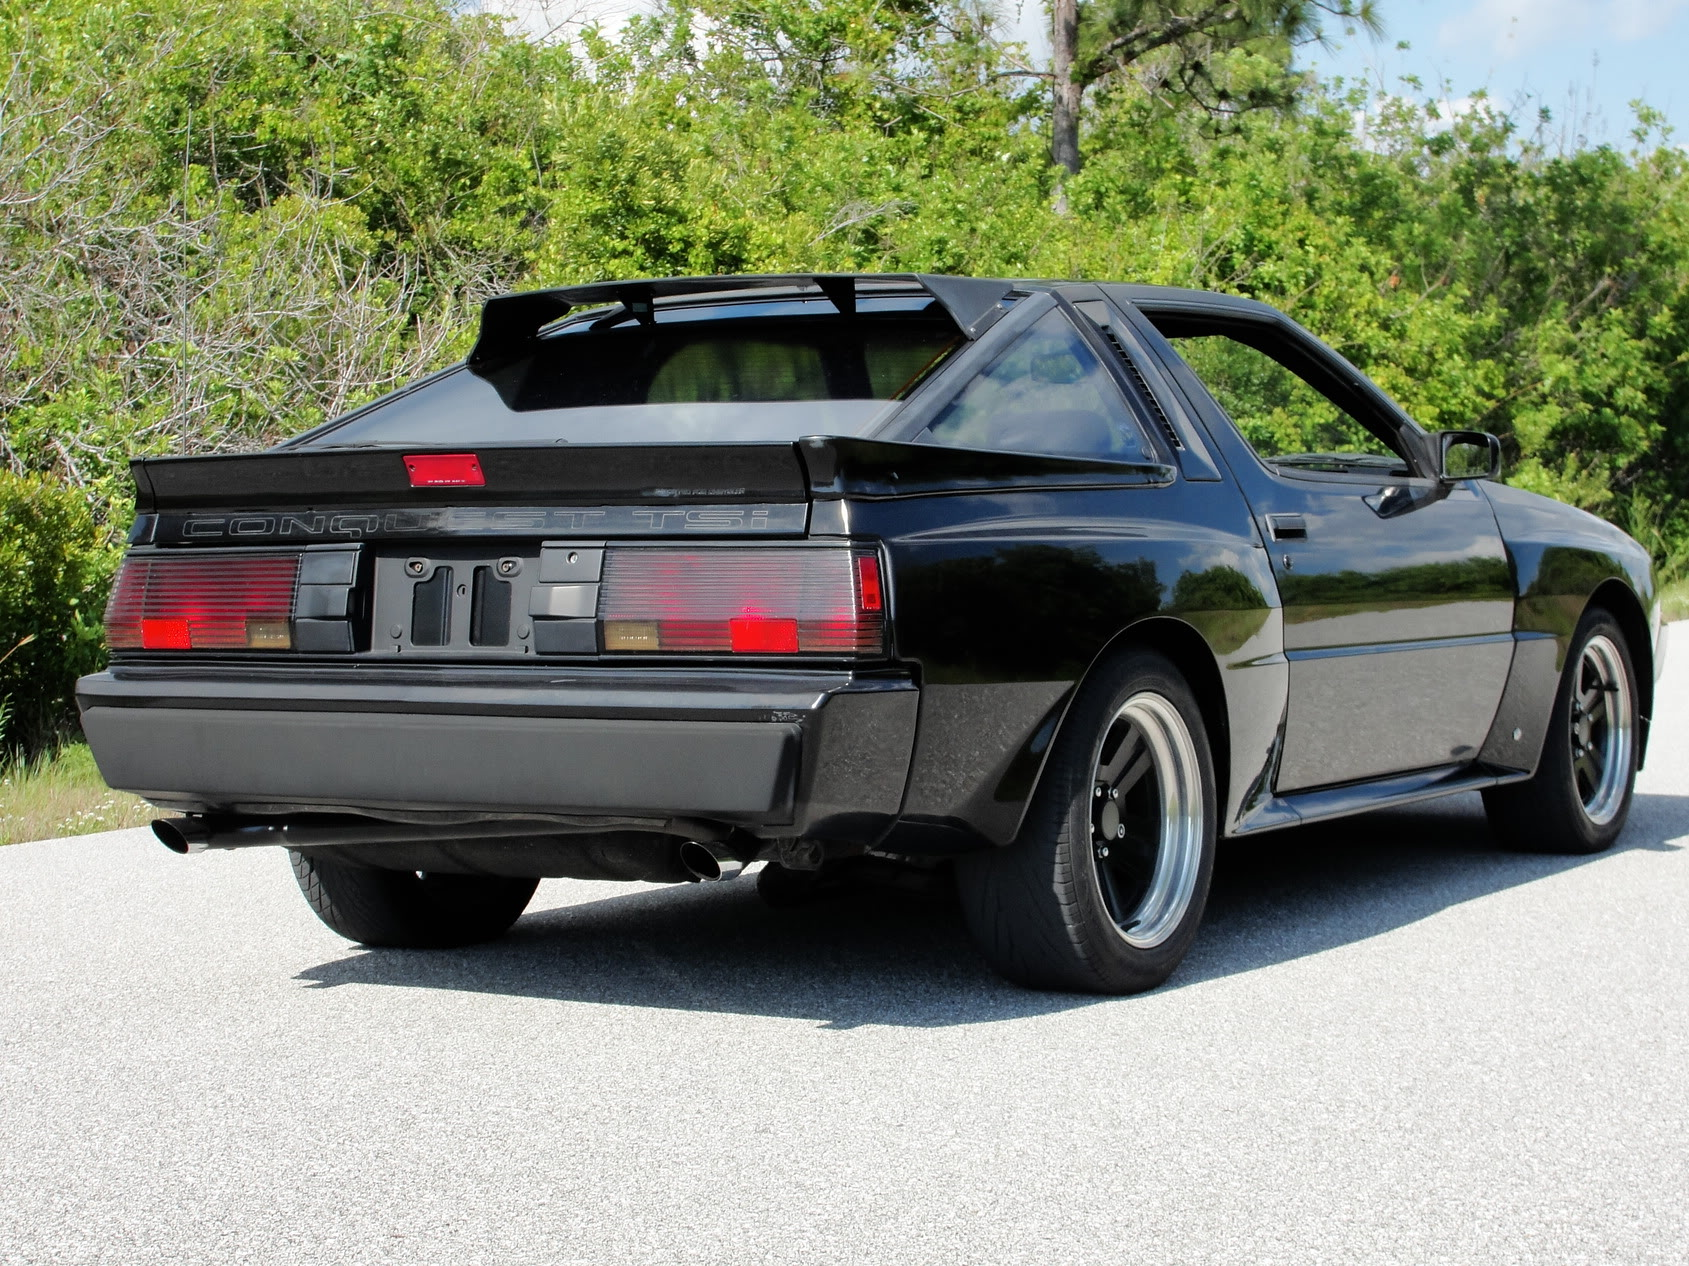 1986 Chrysler Conquest #11